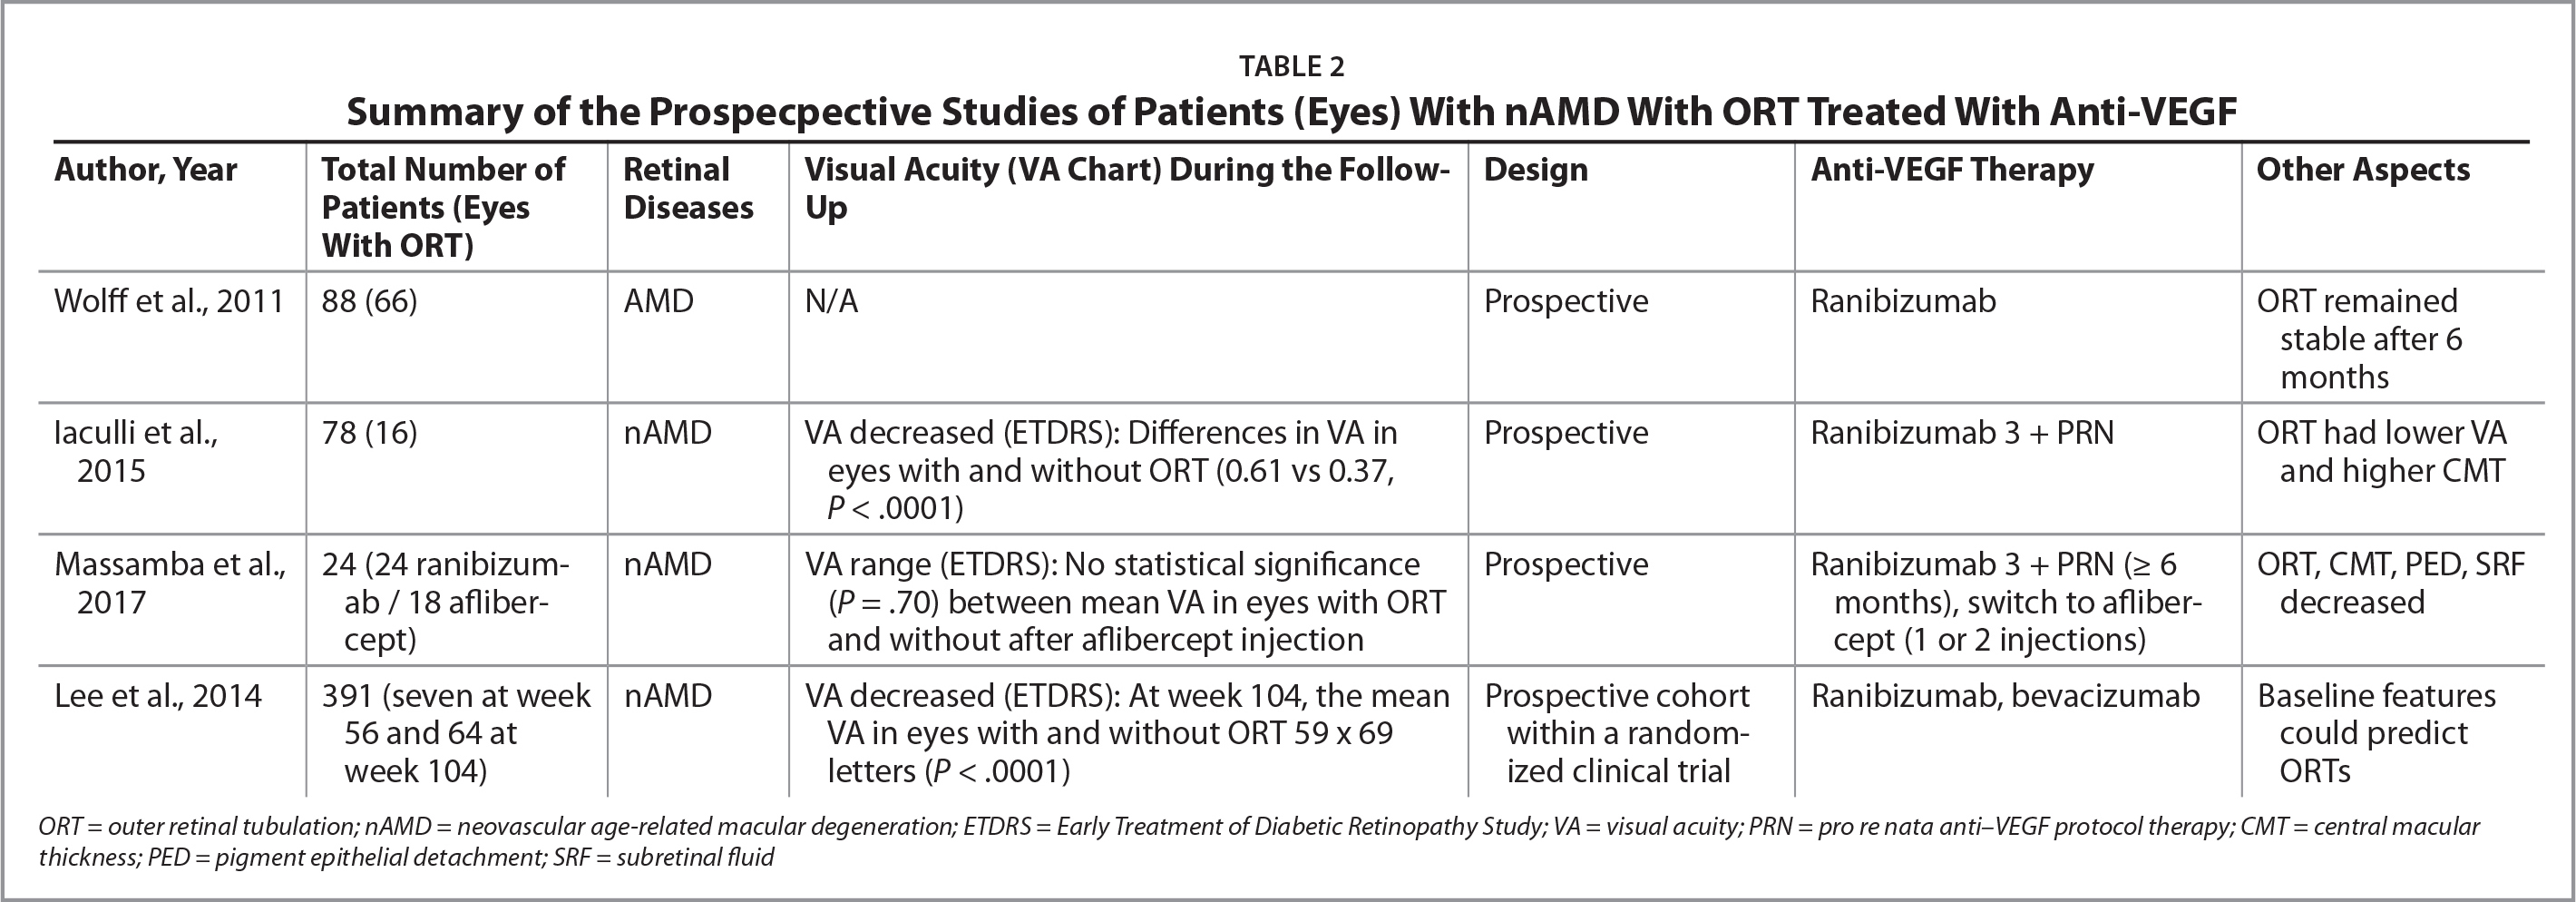 Summary of the Prospecpective Studies of Patients (Eyes) With nAMD With ORT Treated With Anti-VEGF